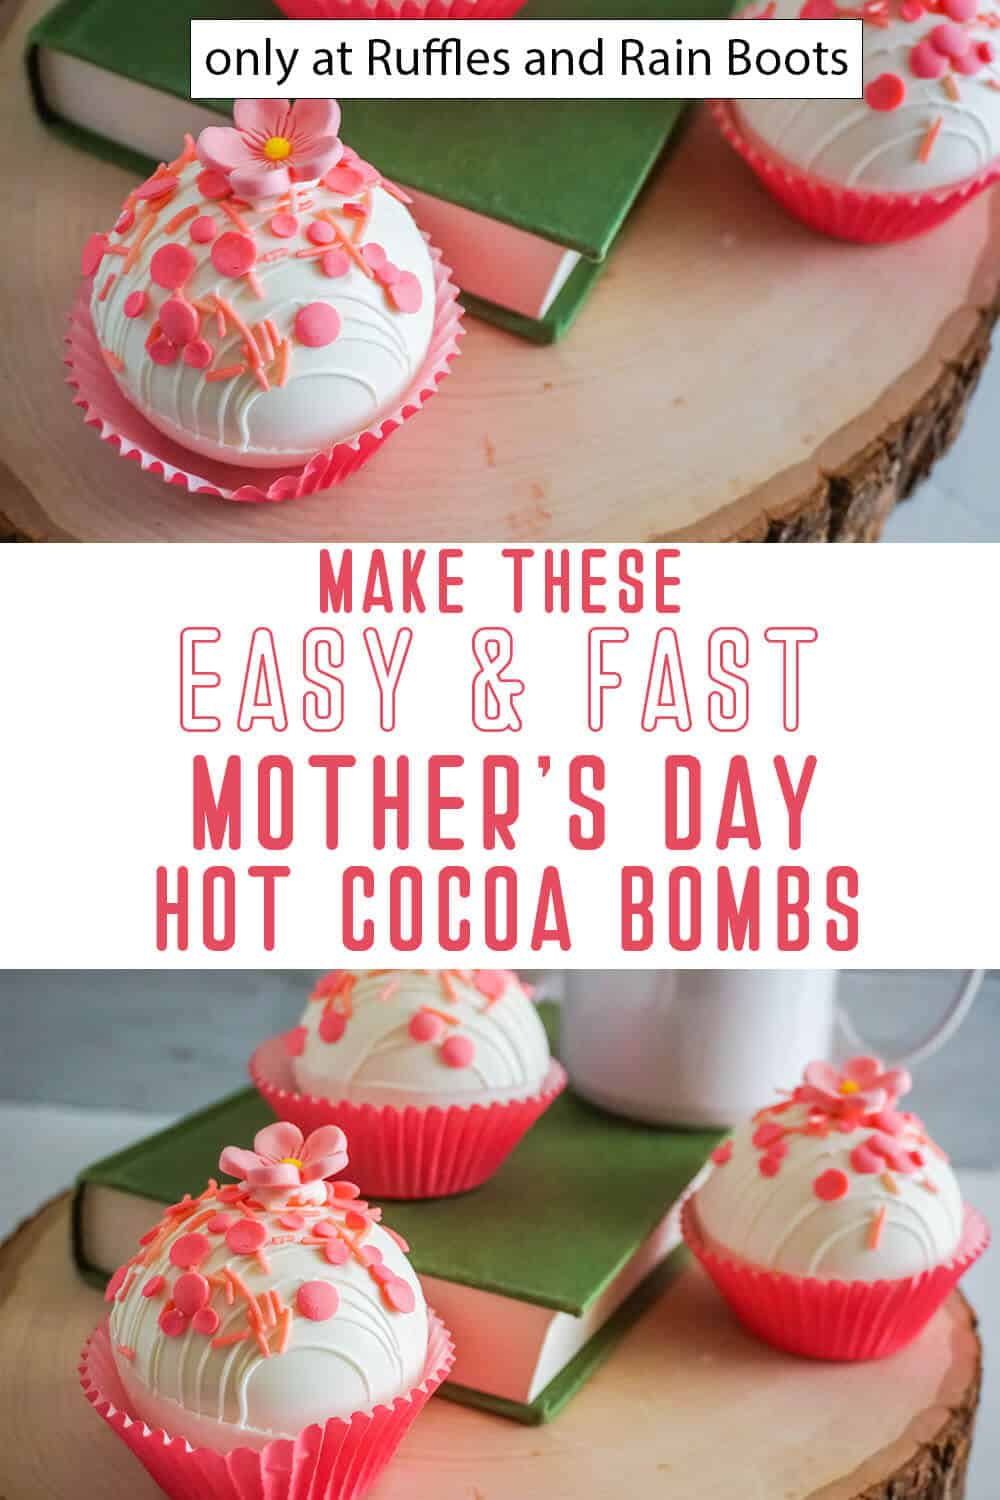 photo collage of mother's day hot cocoa bombs recipe with text which reads make these easy & fast mother's day hot cocoa bombs